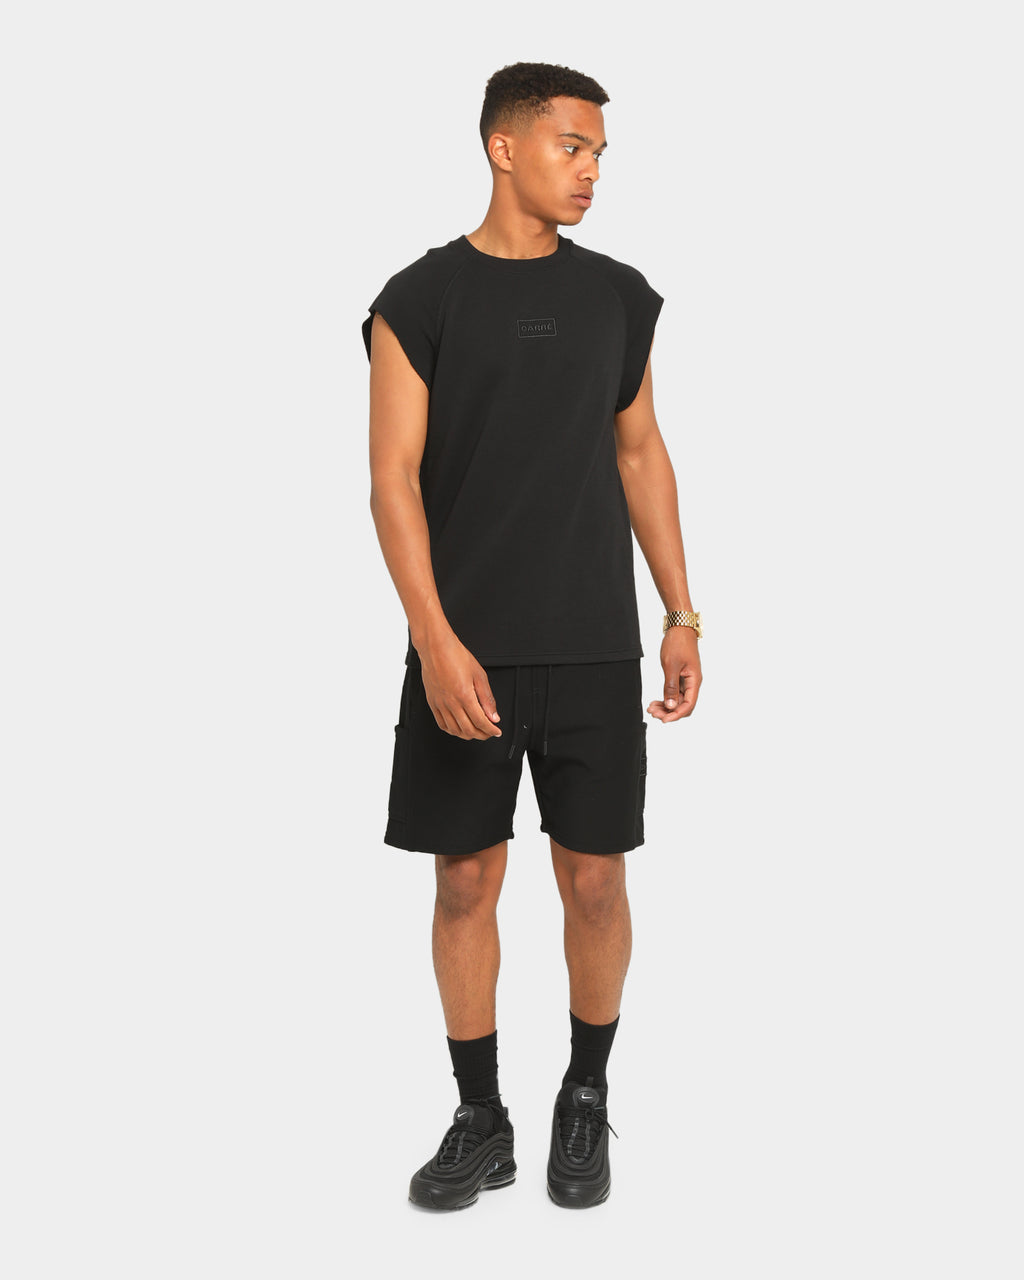 Carré Commando Muscle T-Shirt Black